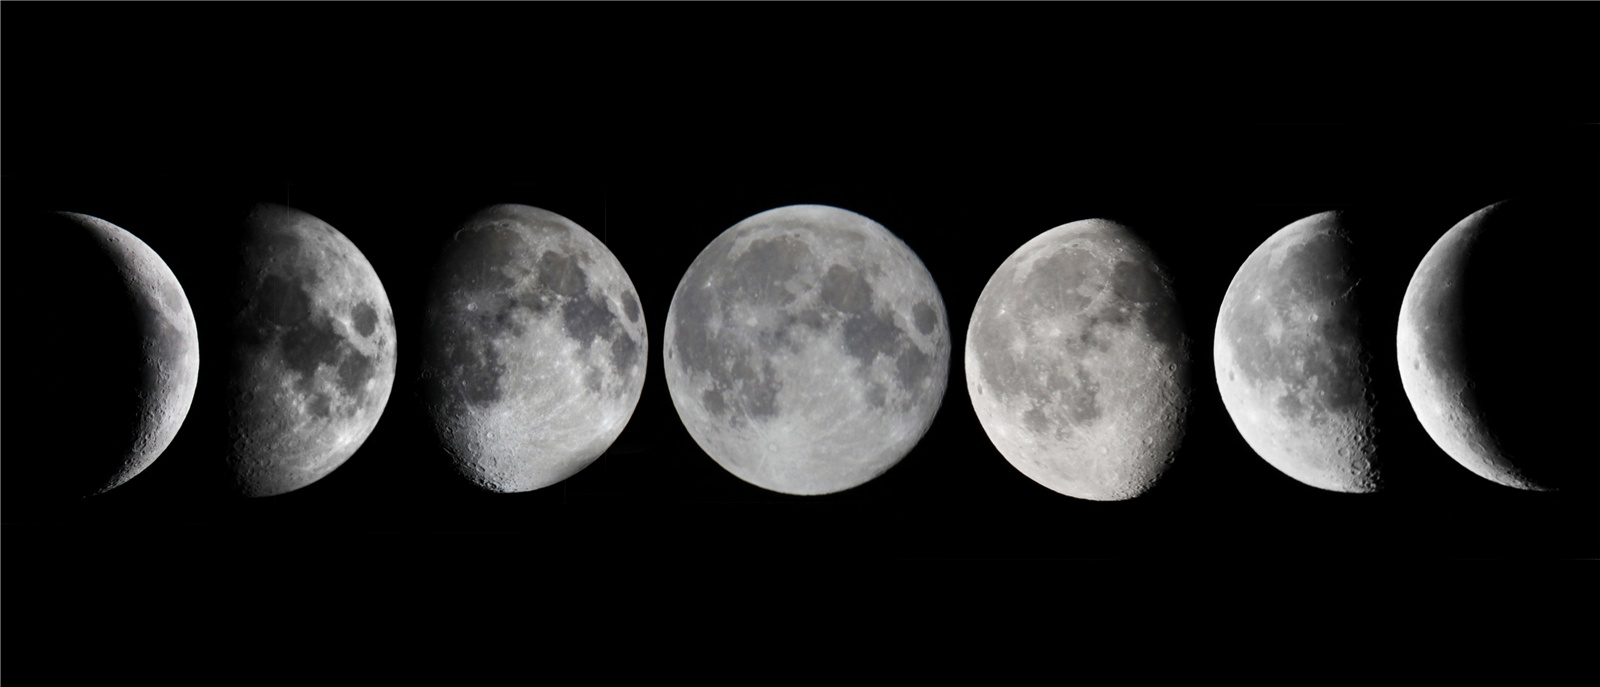 The 7 Basic Phases Of The Moon From Left To Right Waxing Crescent First Quarter Waxing Gibbous Full Moon Moon Tattoo Moon Cycle Tattoo Moon Phases Tattoo